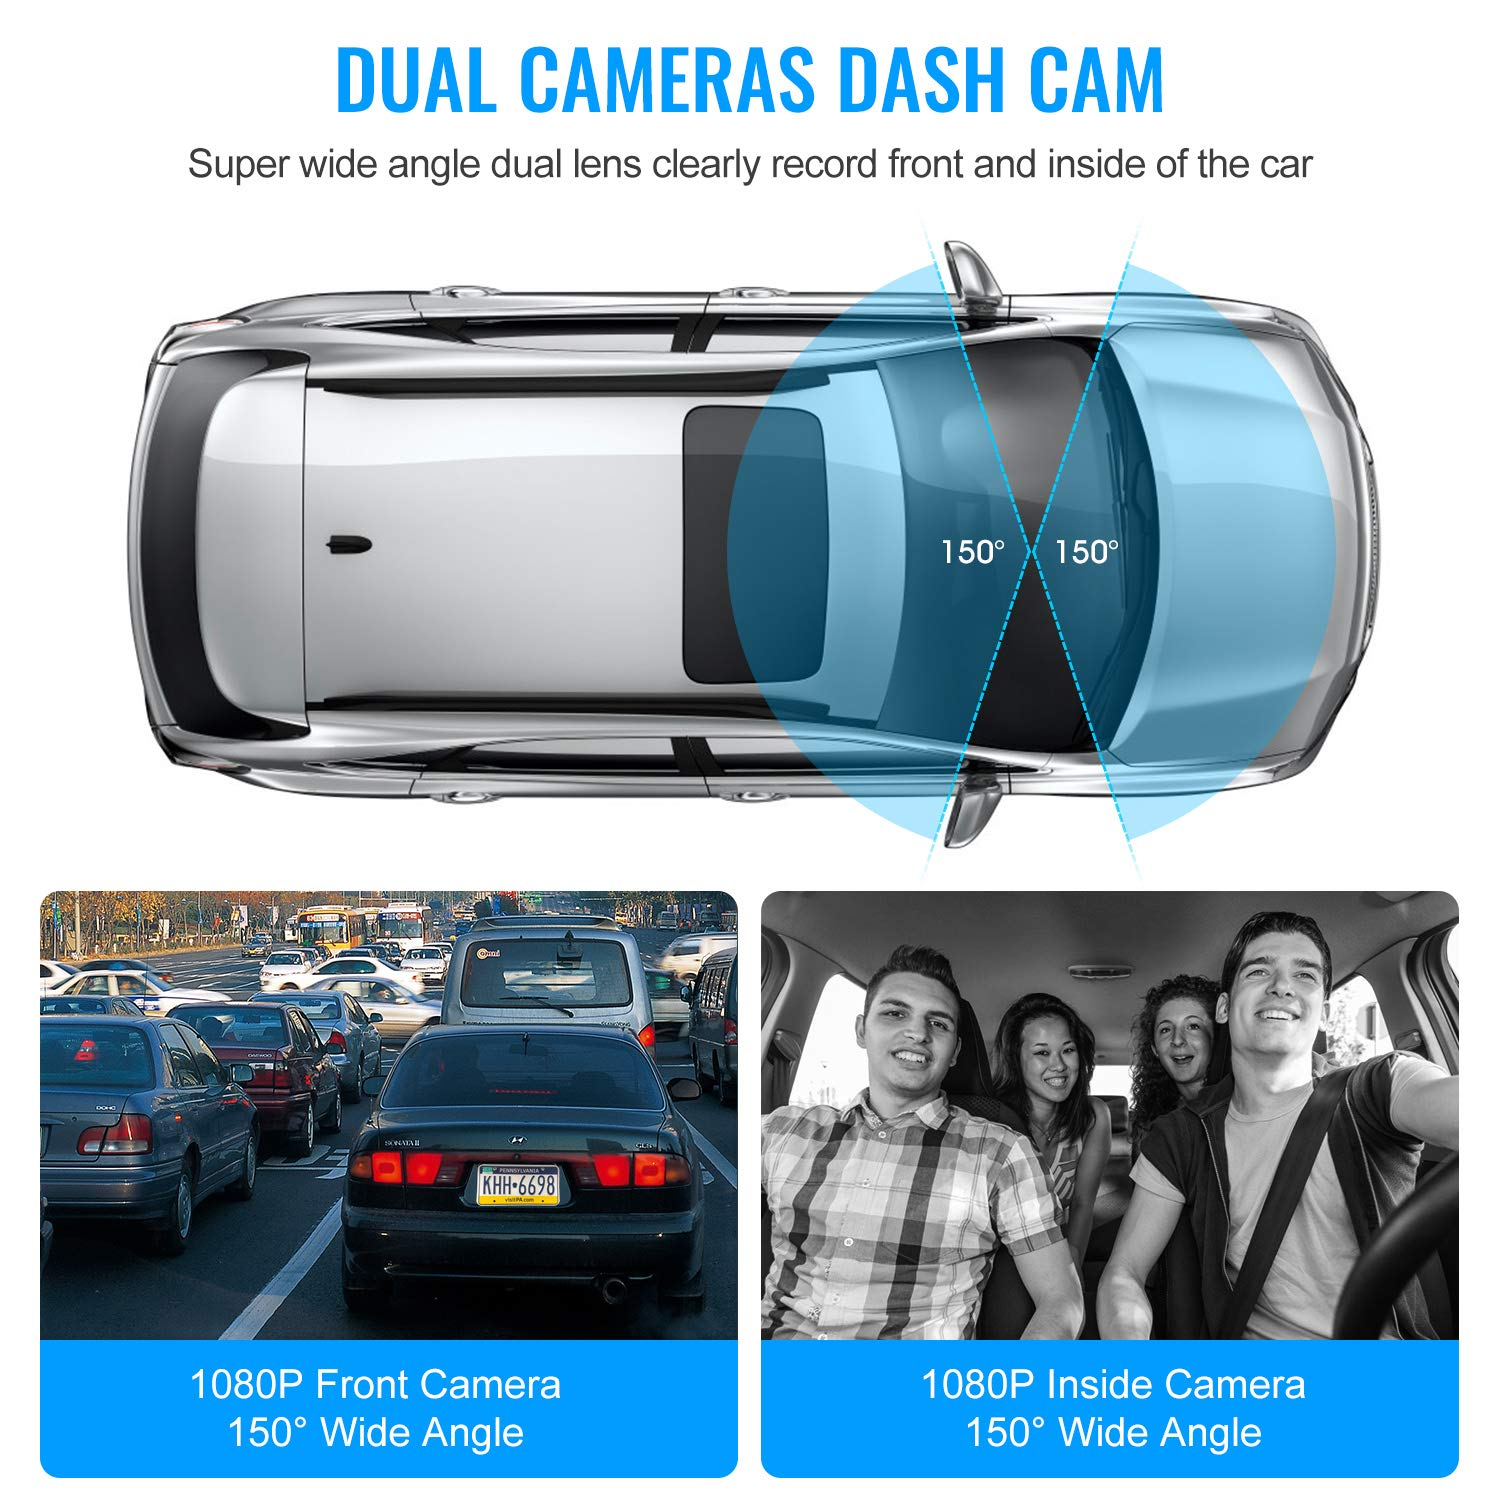 Upgraded Pruveeo P3 Dash Cam with Infrared Night Vision, Built-in GPS, WiFi, Dual 1080P Front and Inside, Dash Camera for Cars Uber Lyft Truck Taxi by Pruveeo (Image #7)